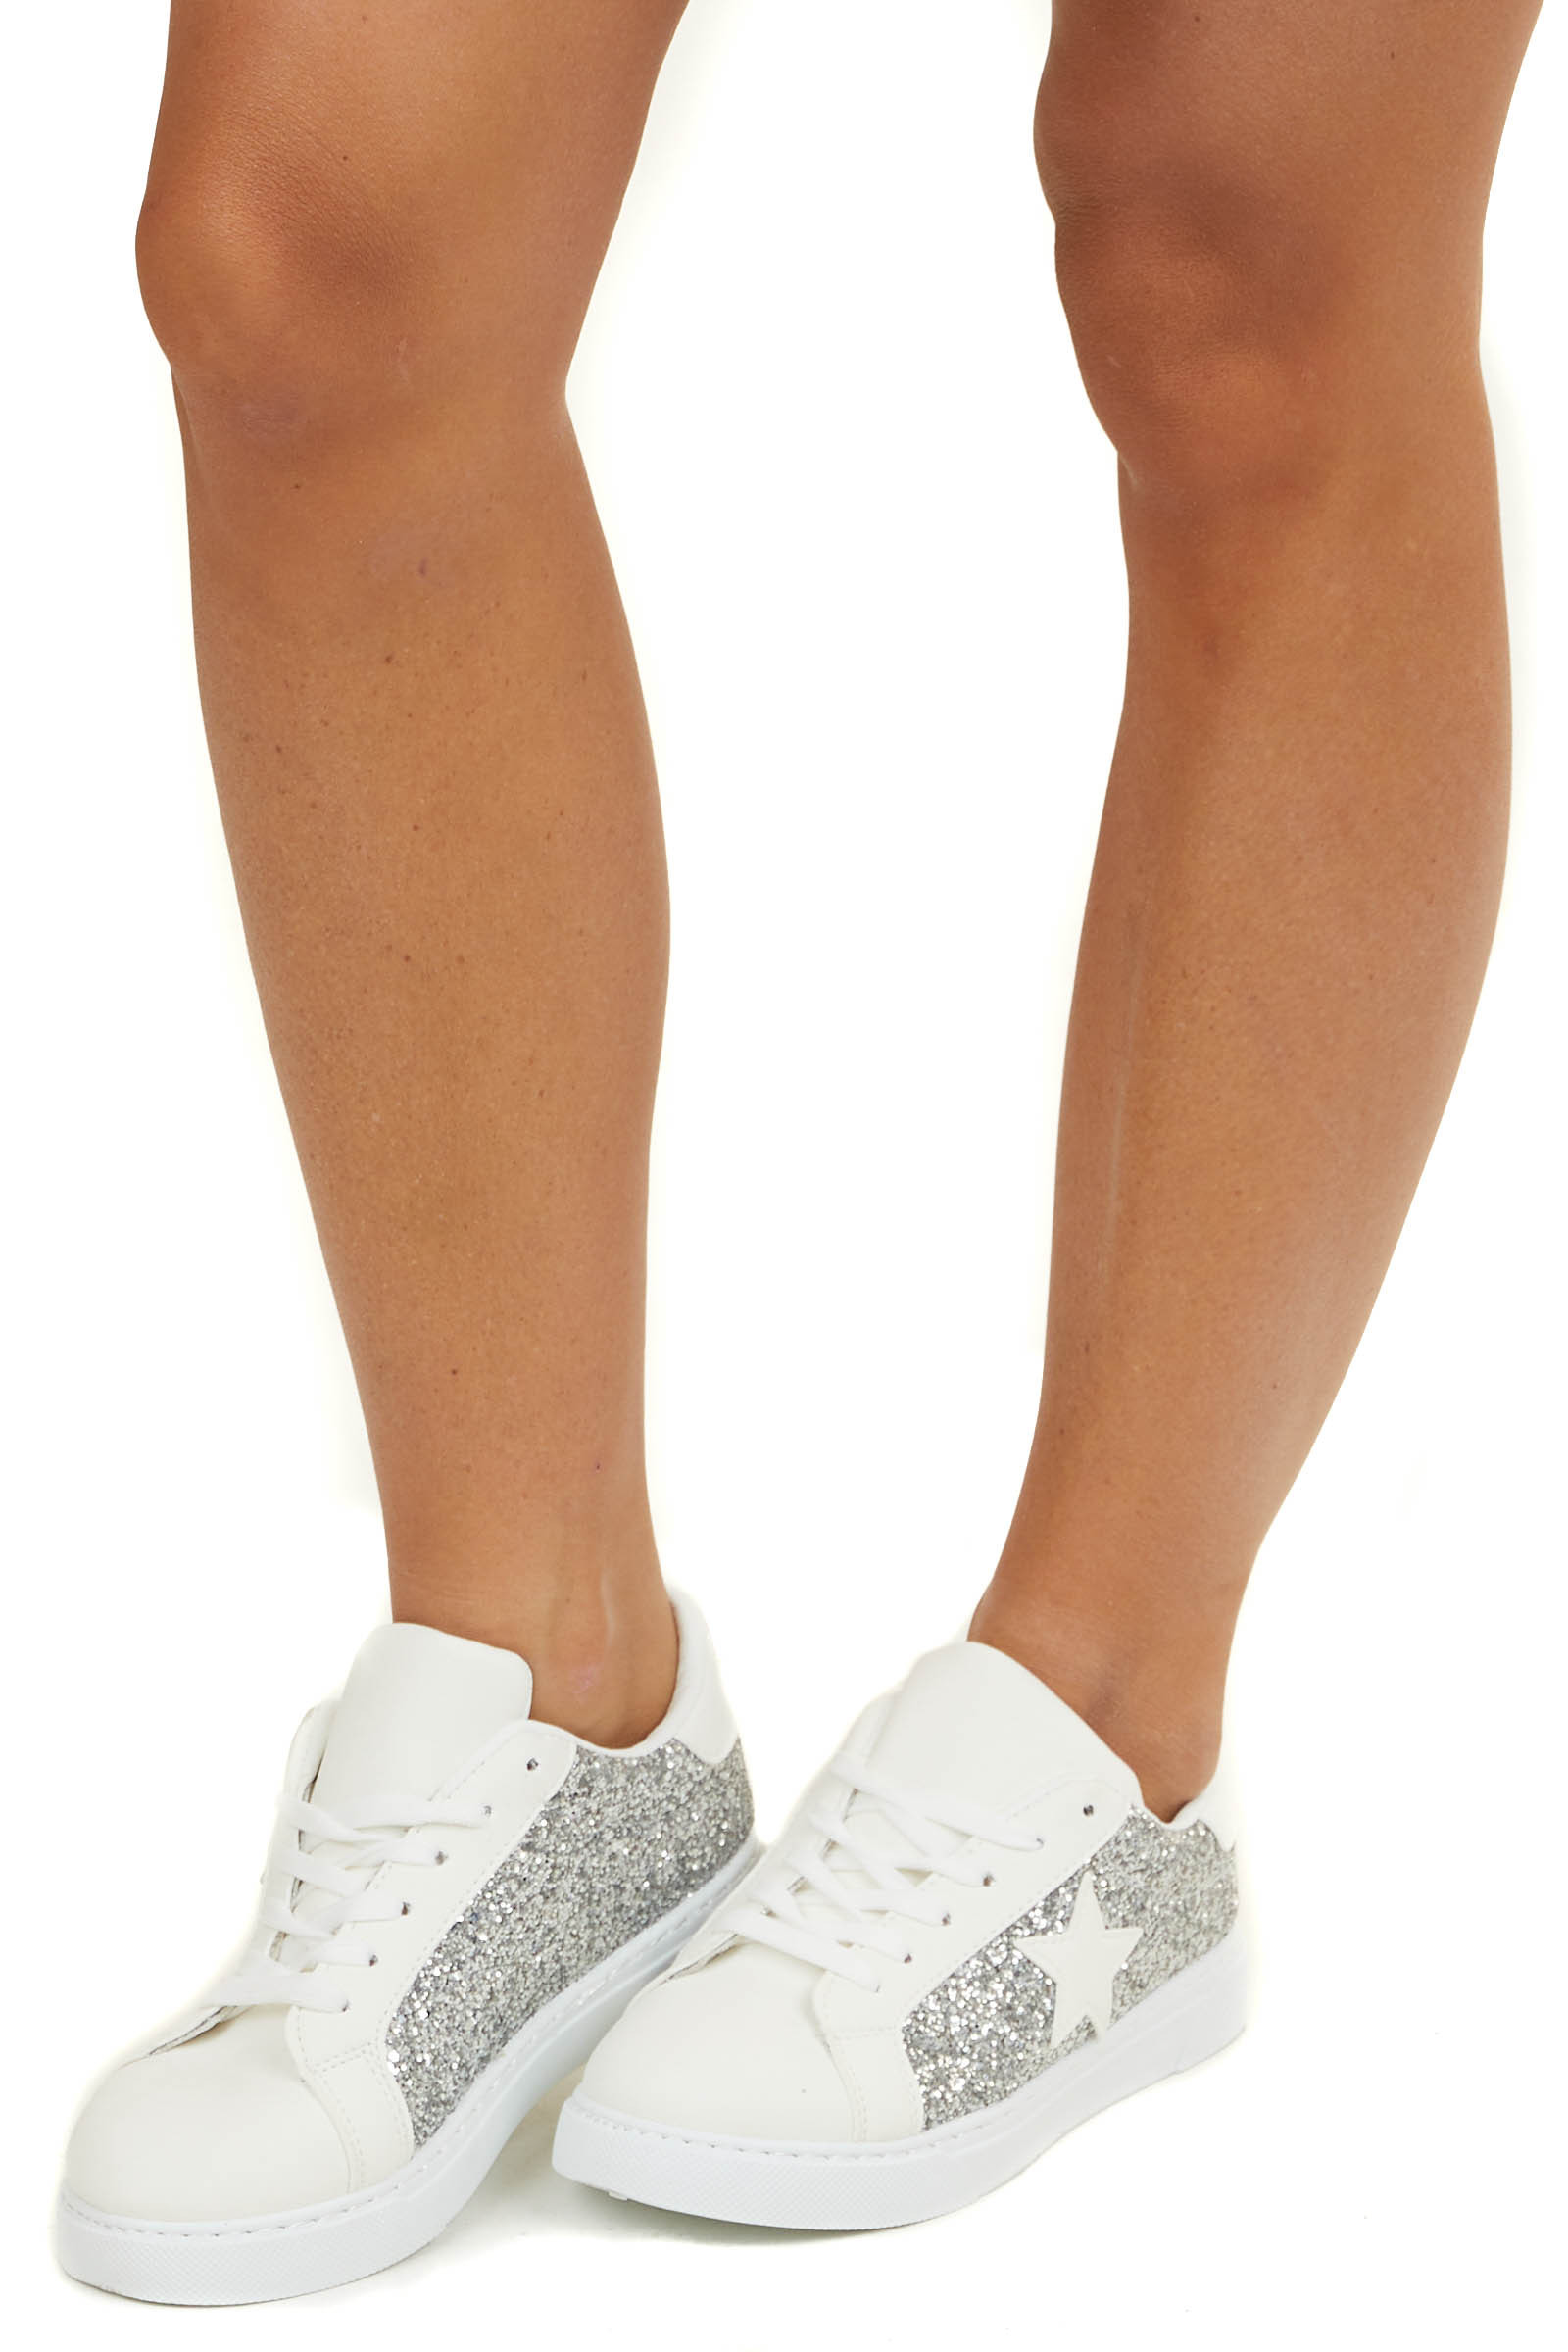 Ivory and Silver Glitter Star Sneakers with Laces